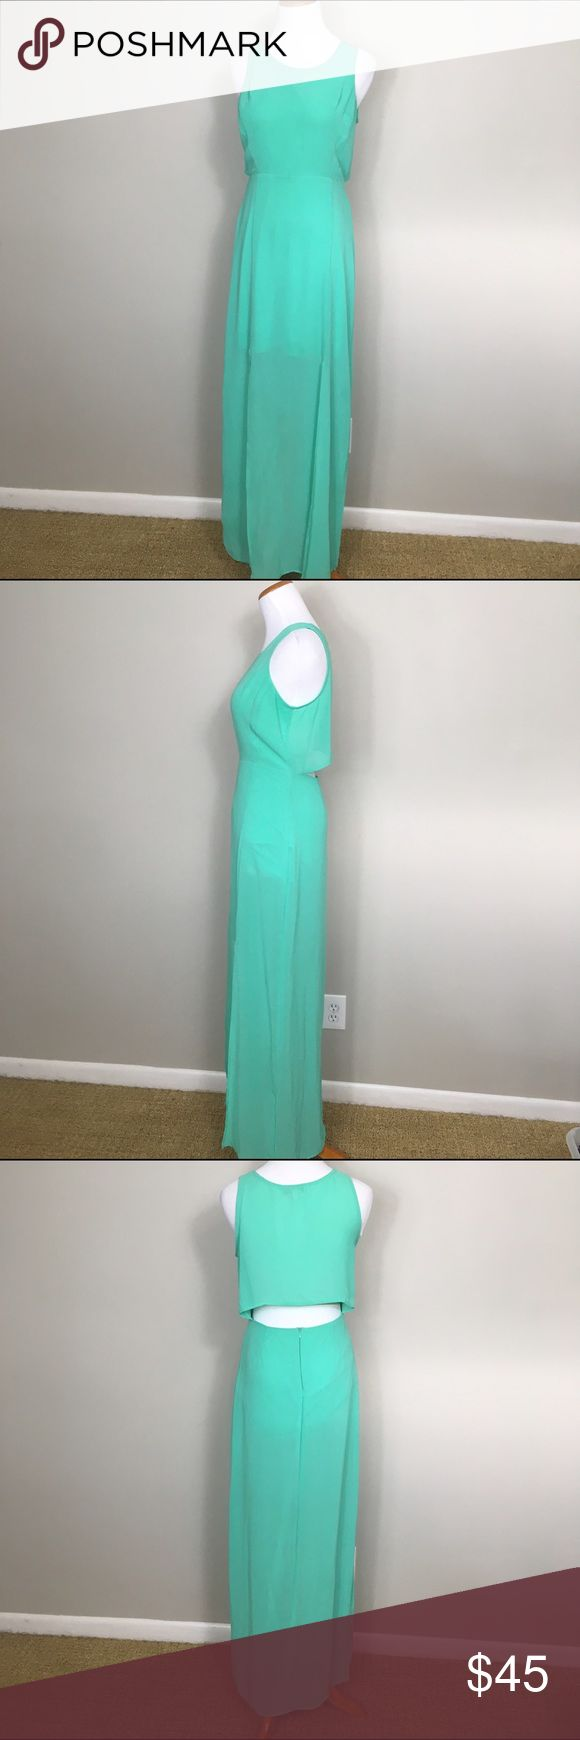 Gianni Bini mint turquoise maxi dress; sheer back Gianni Bini mint turquoise maxi dress; sheer cut out back, m-slits in front; flown and gorgeous! Gianni Bini Dresses Maxi